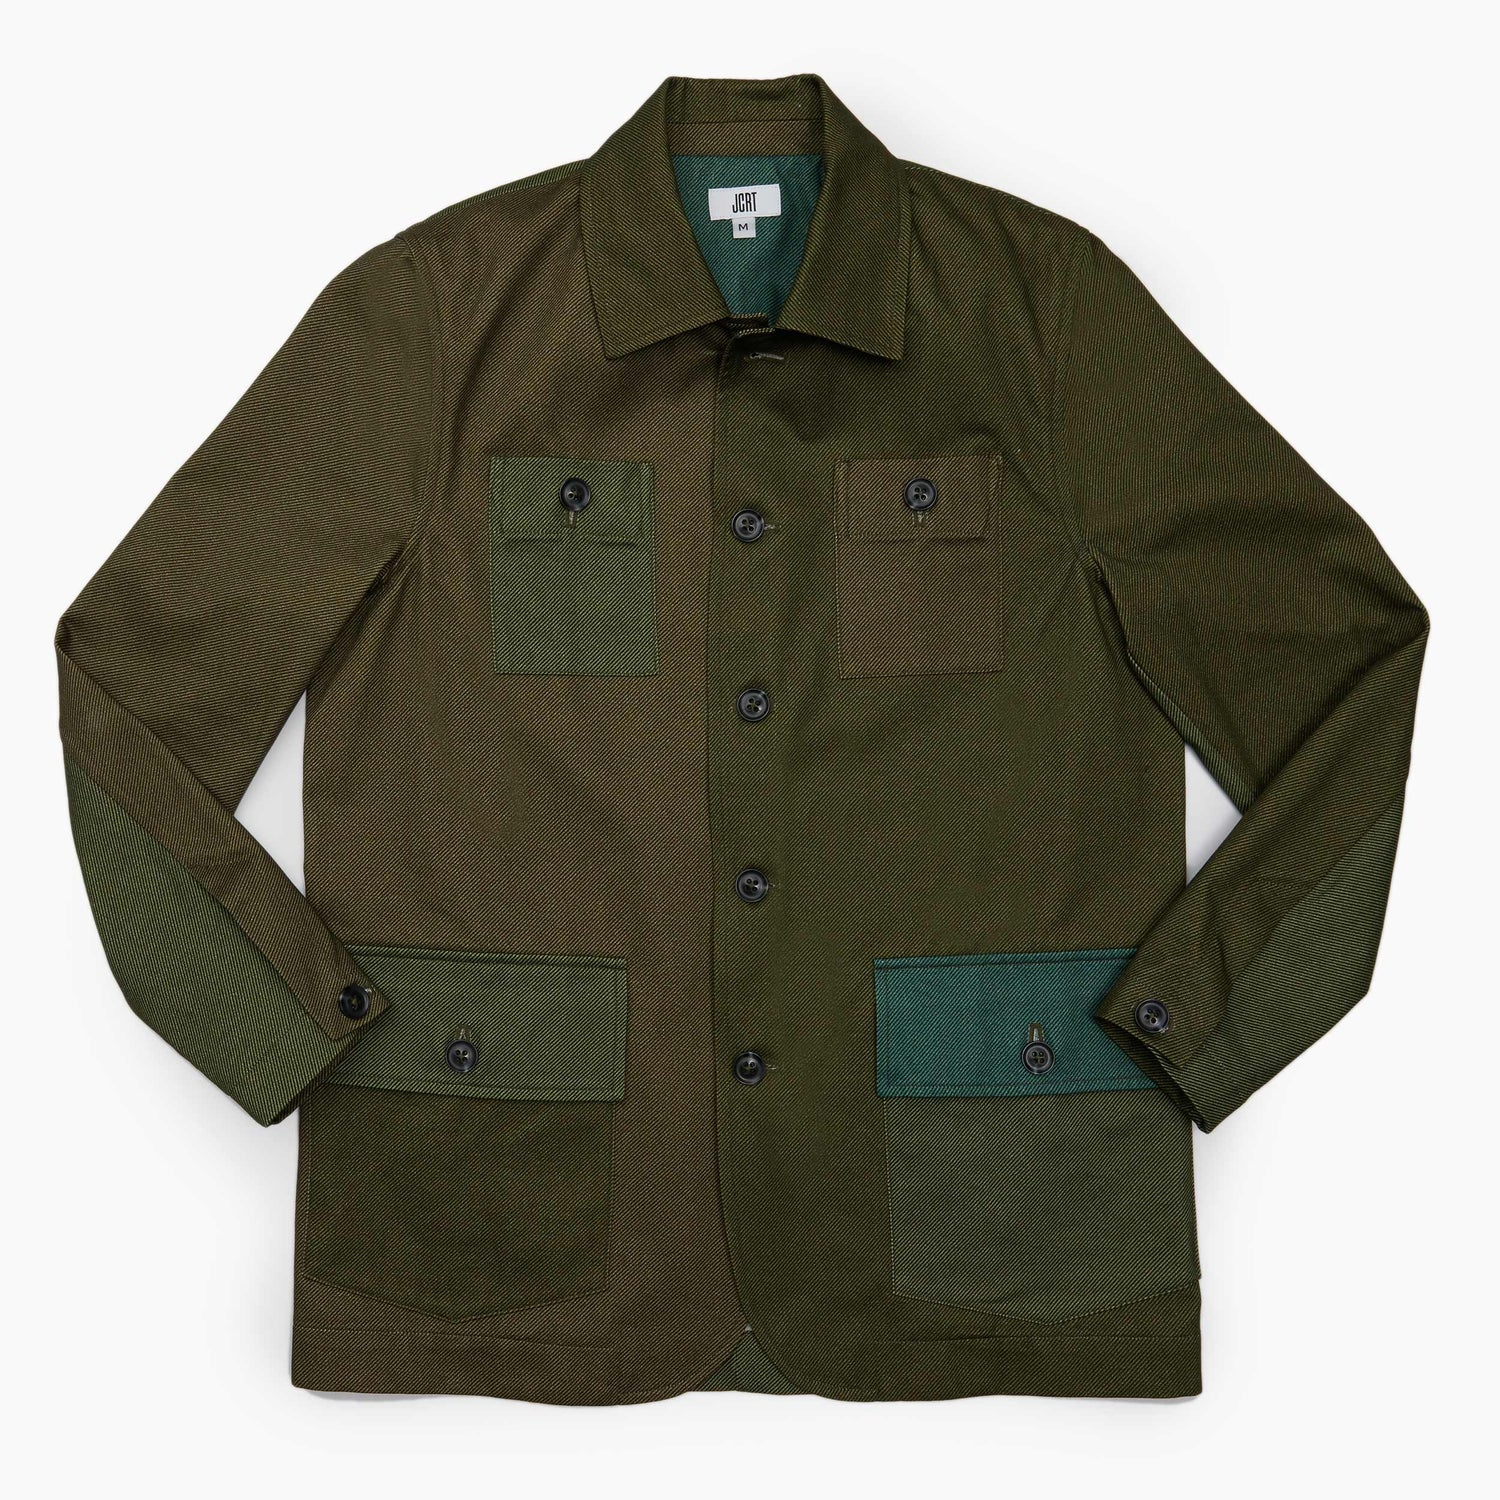 The Leaf Green Twill Country Jacket